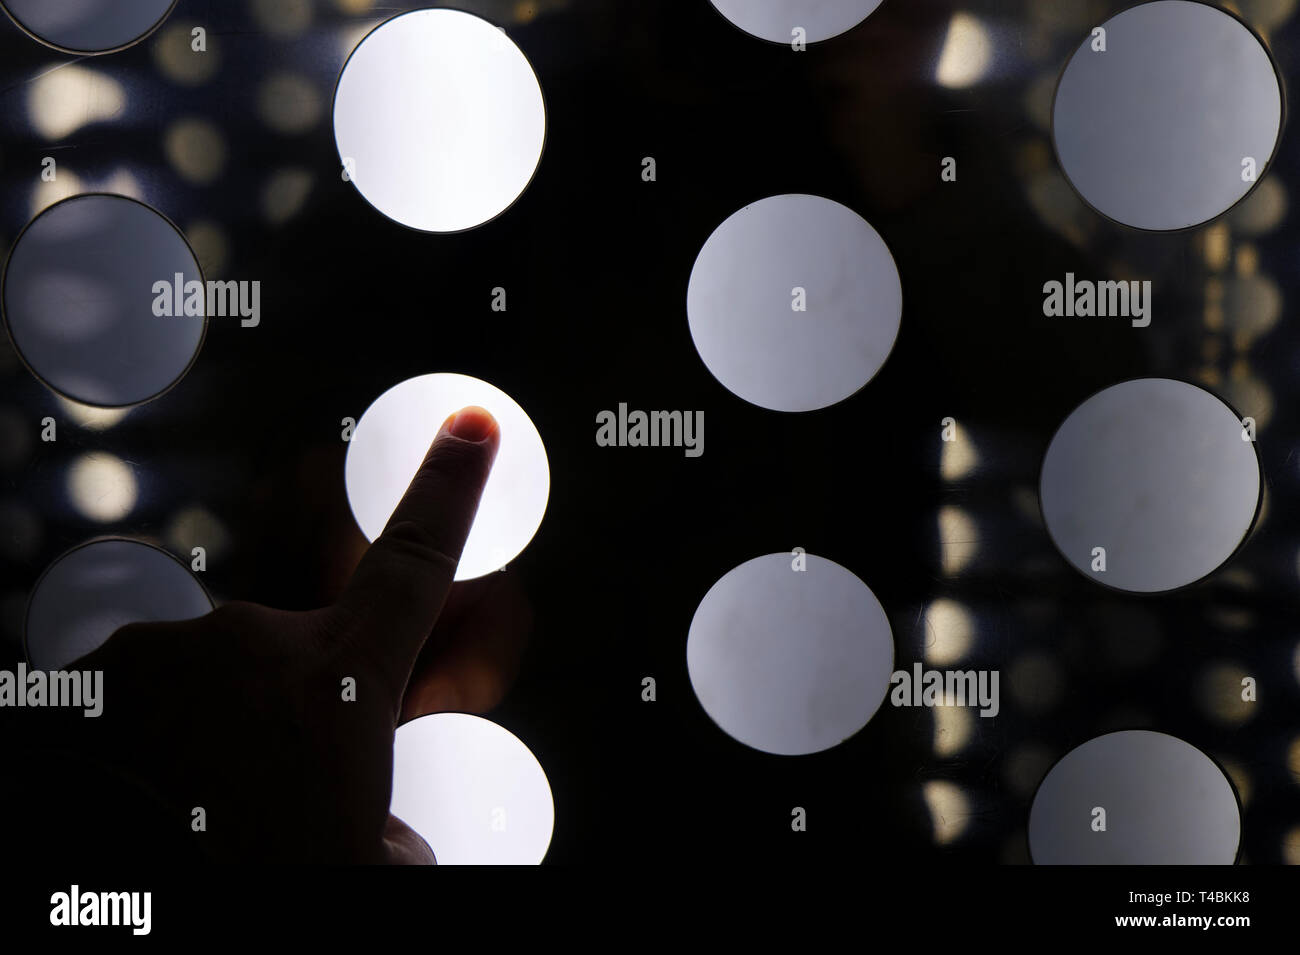 finger tapping on abstract interface digital wall - virtual room experience - Stock Image